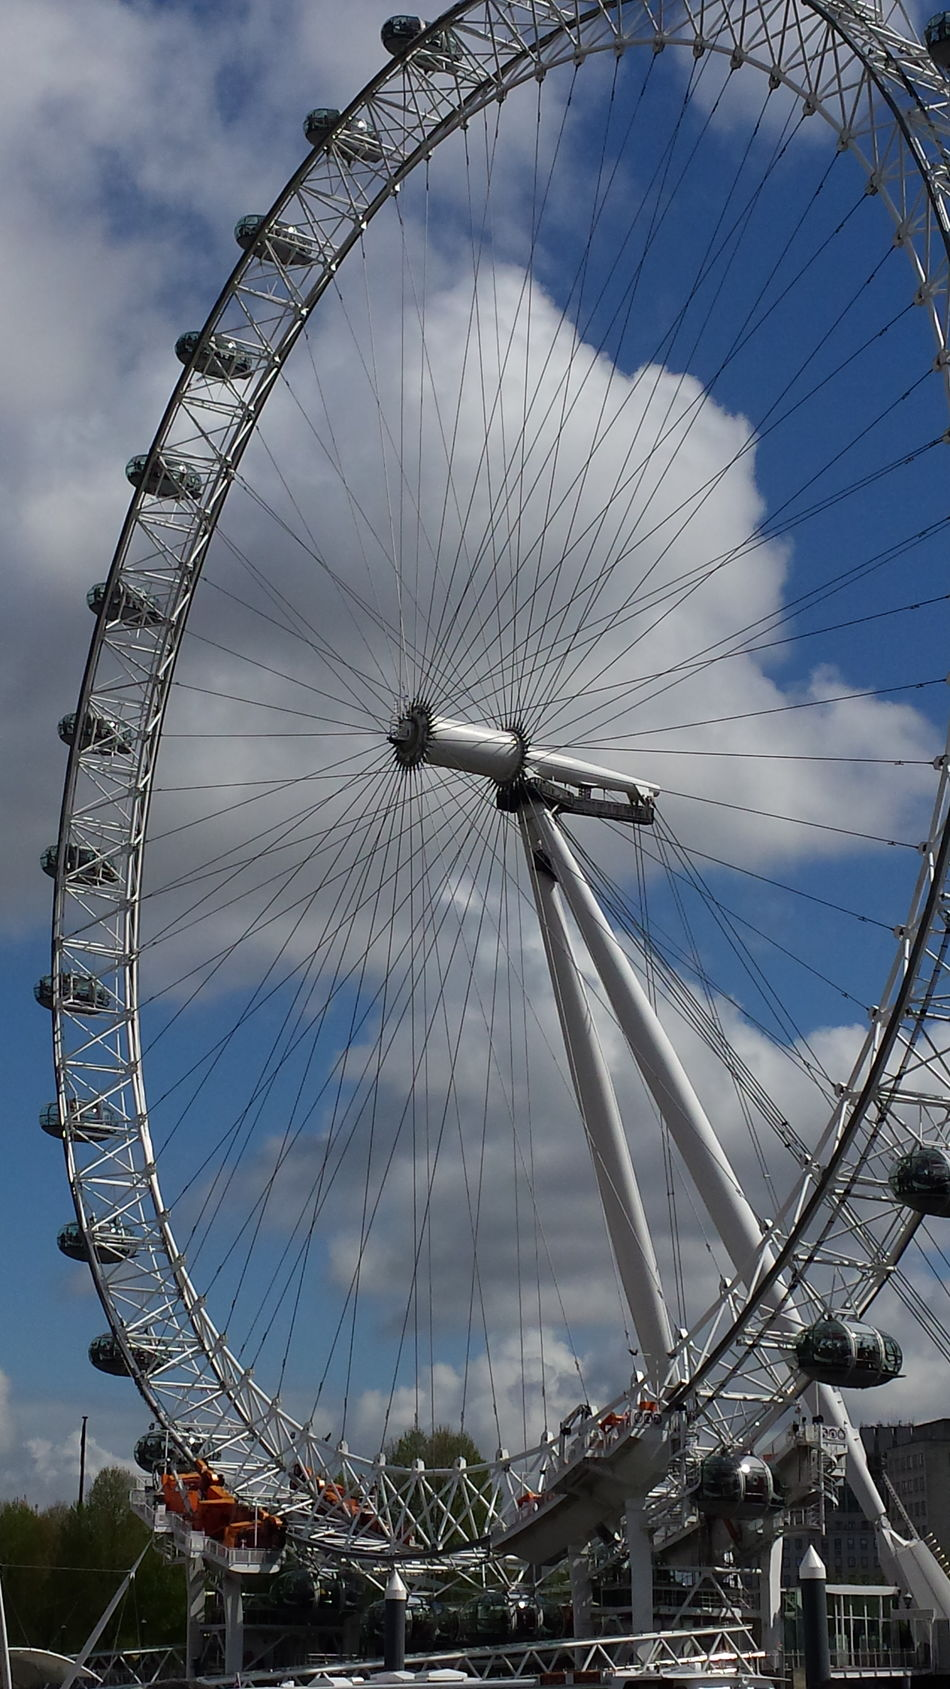 London Eye's memories #bestofday #Canon #EyeEm #Happiness #london #londoneye #love #photography #pic #picture #ShootTheDay #travel Capital Cities  Cloudy Outdoors Sky Tourism Travel Destinations First Eyeem Photo